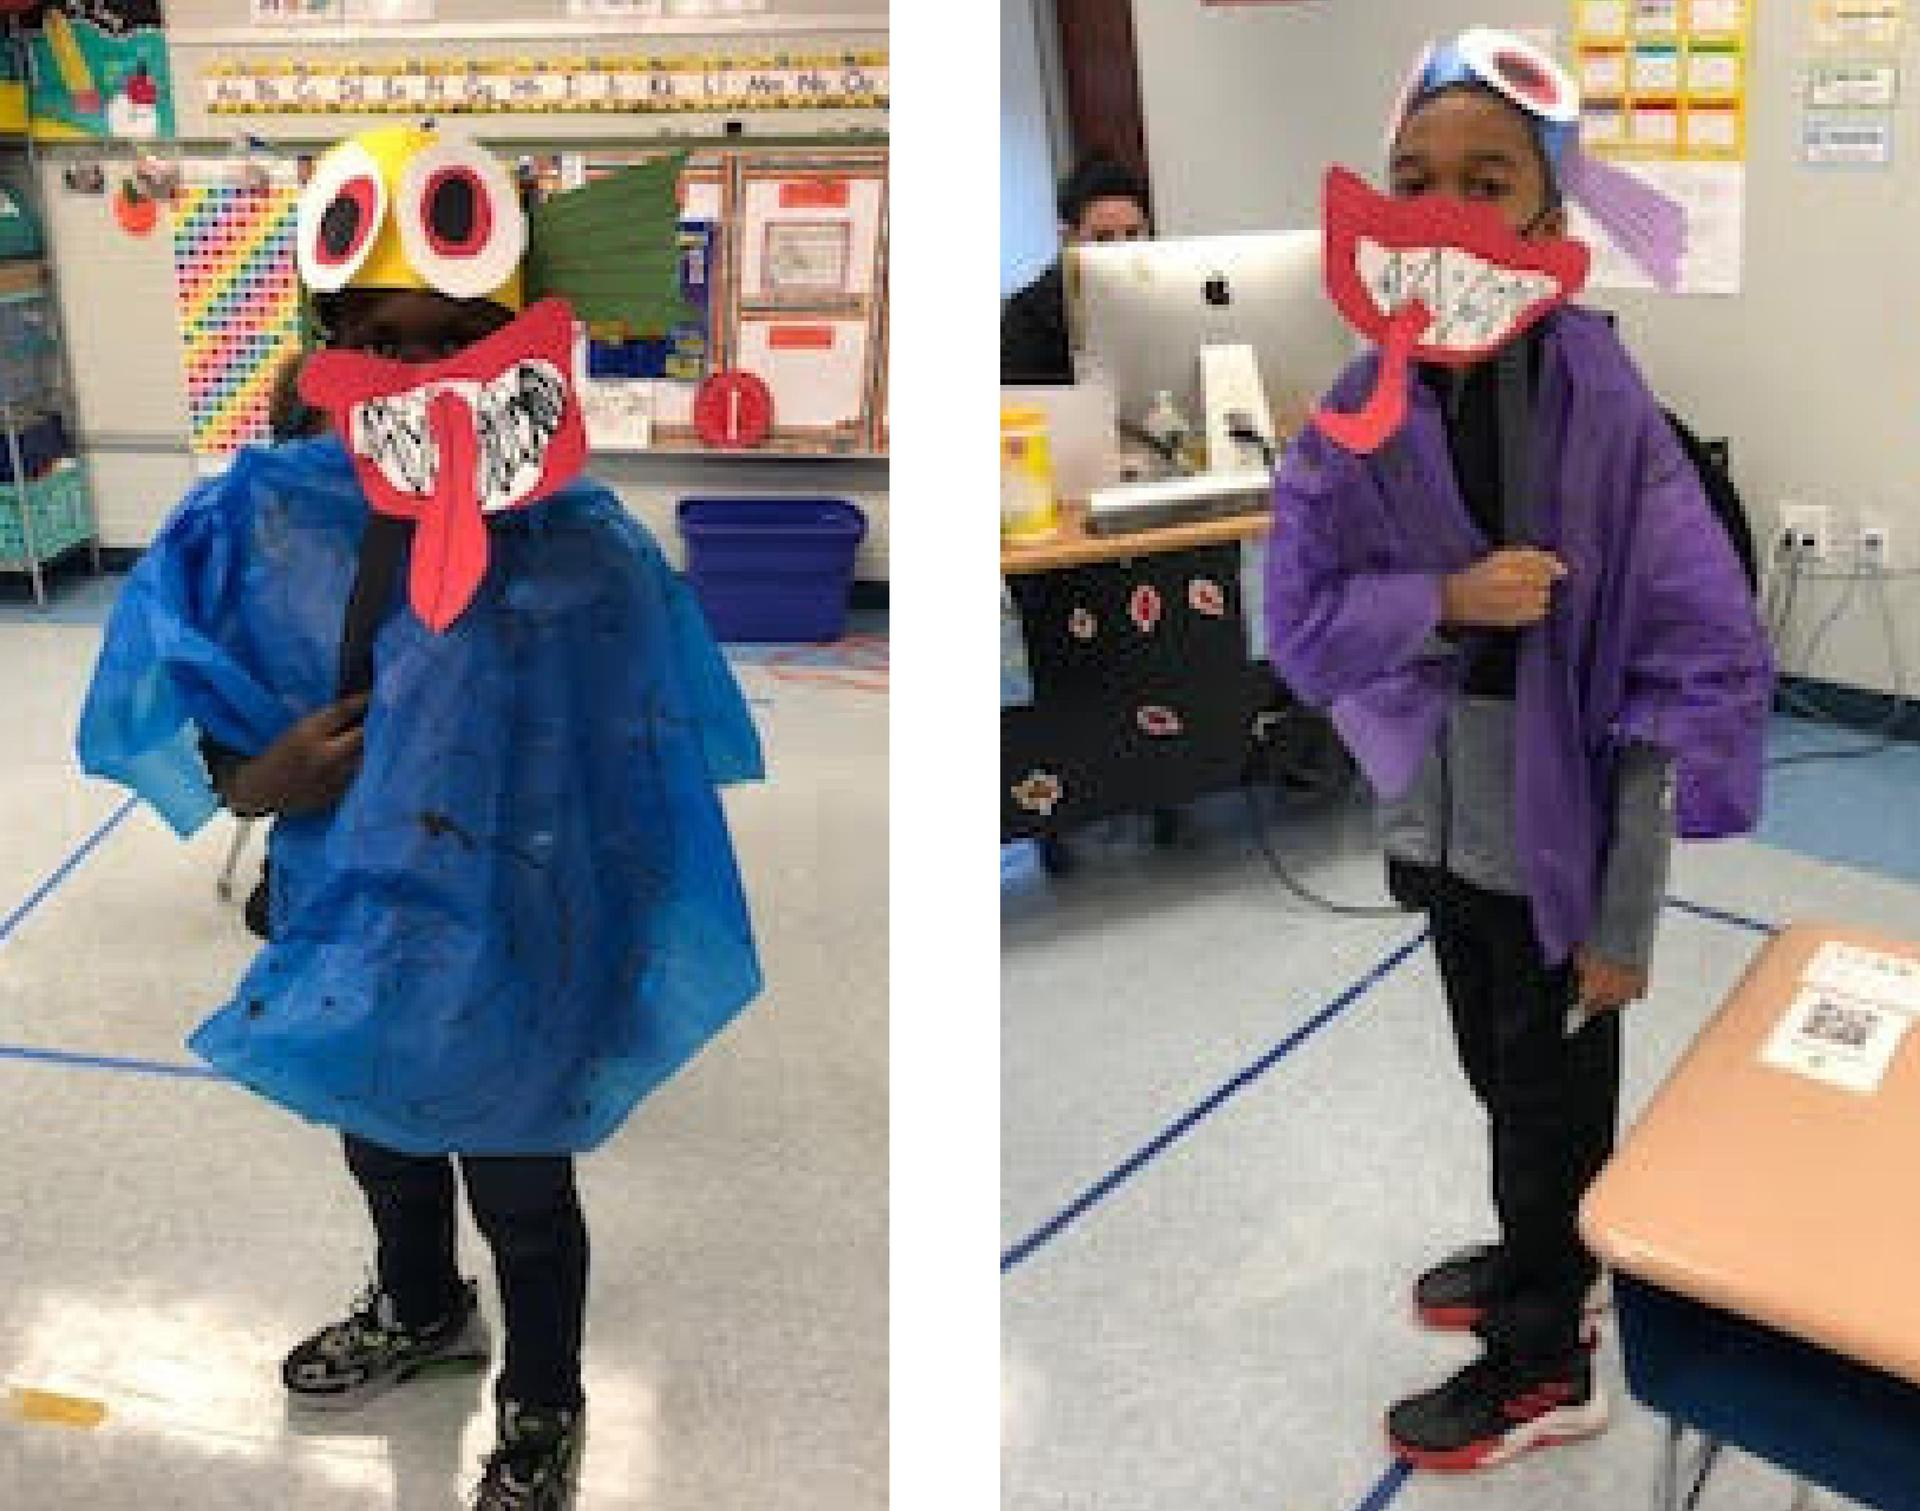 Two tile image, students dressed in costumes